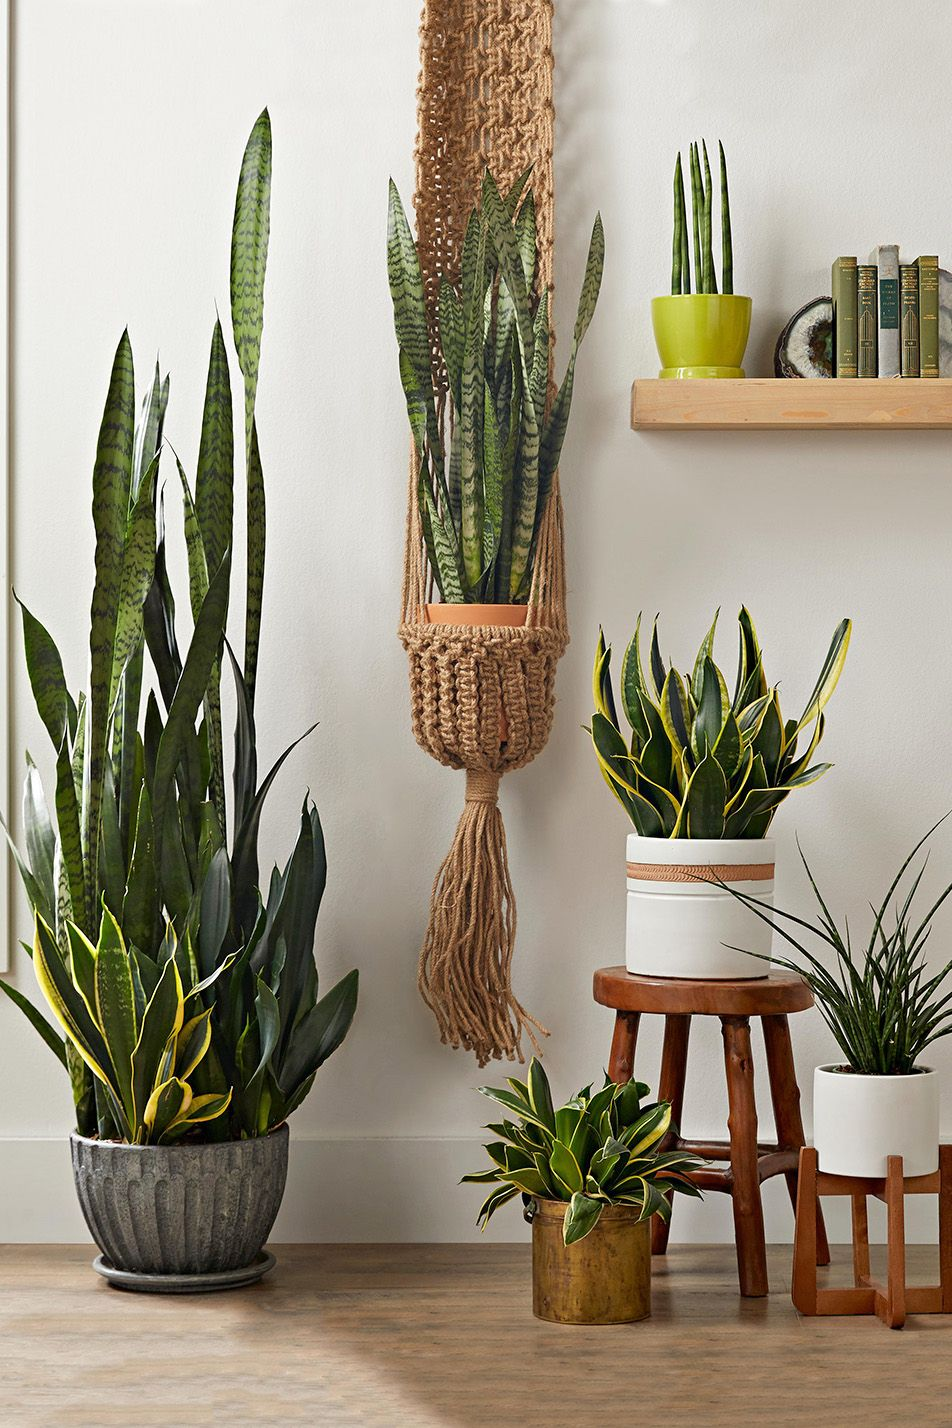 These 10 Succulents Are Some of the Easiest to Grow Indoors